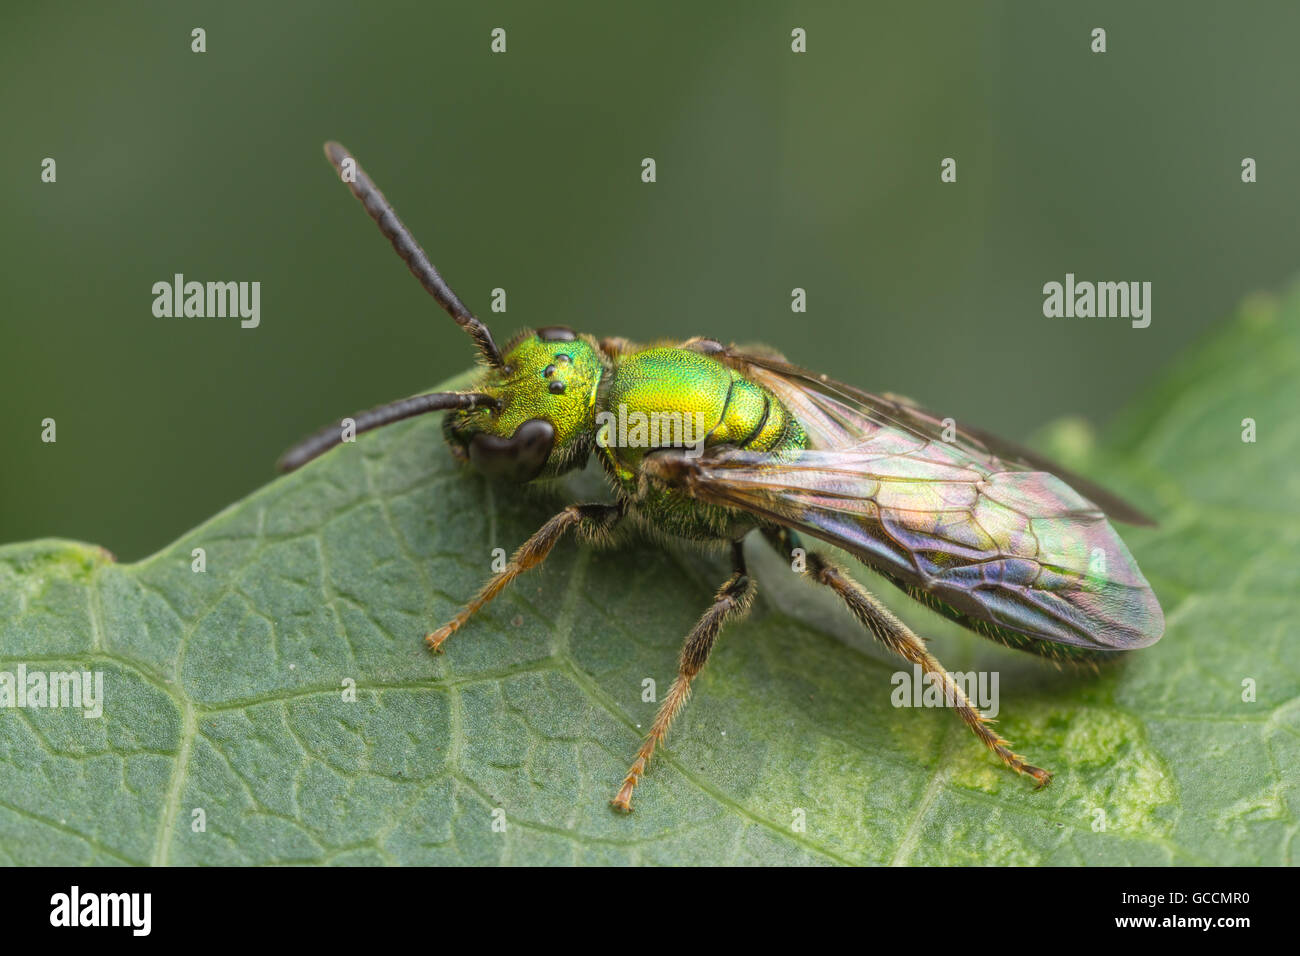 A bright metallic green Sweat Bee (Augochlora pura) stands at the edge of a leaf. - Stock Image